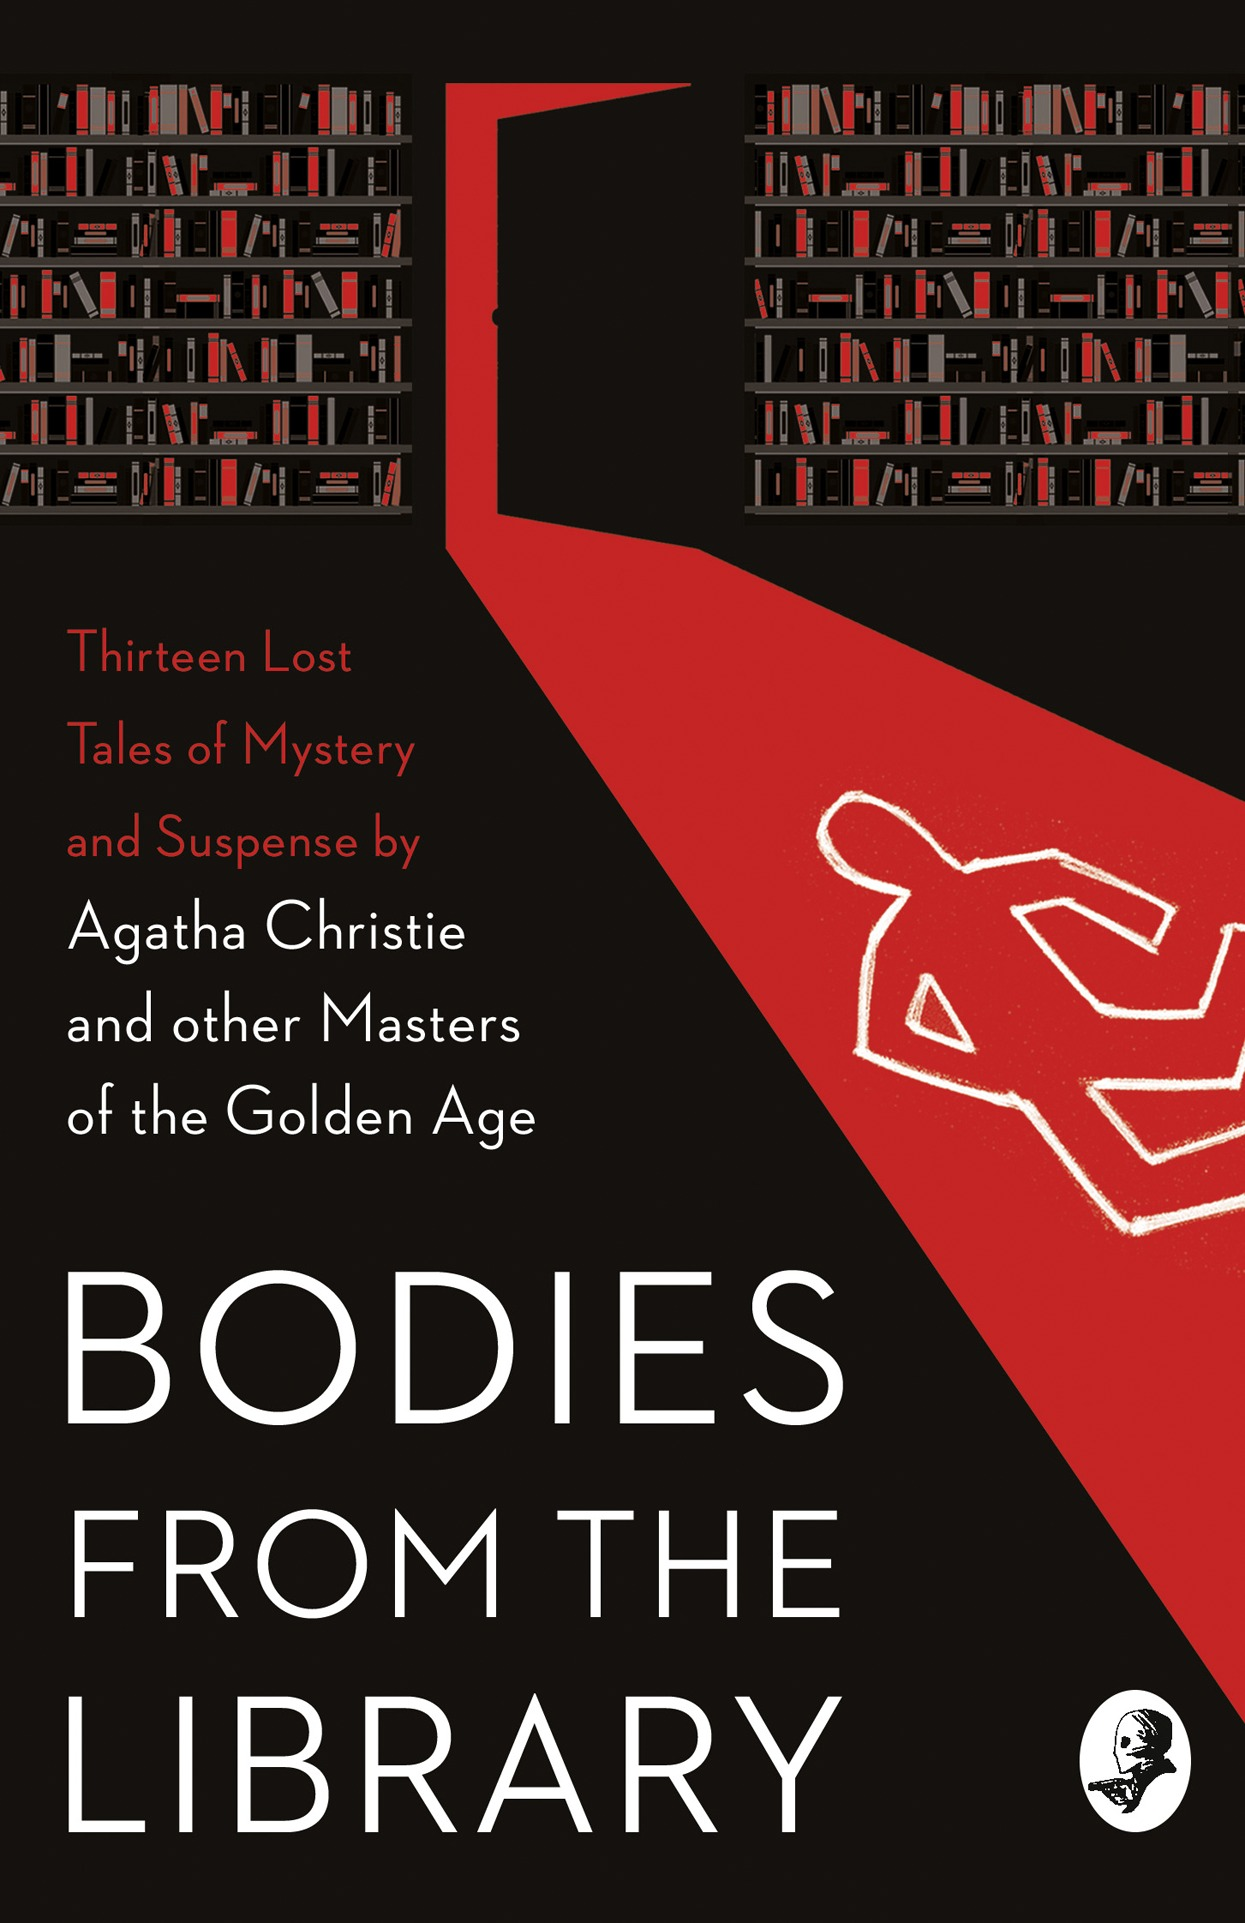 Купить Агата Кристи Bodies from the Library: Lost Tales of Mystery and Suspense by Agatha Christie and other Masters of the Golden Age онлайн с доставкой